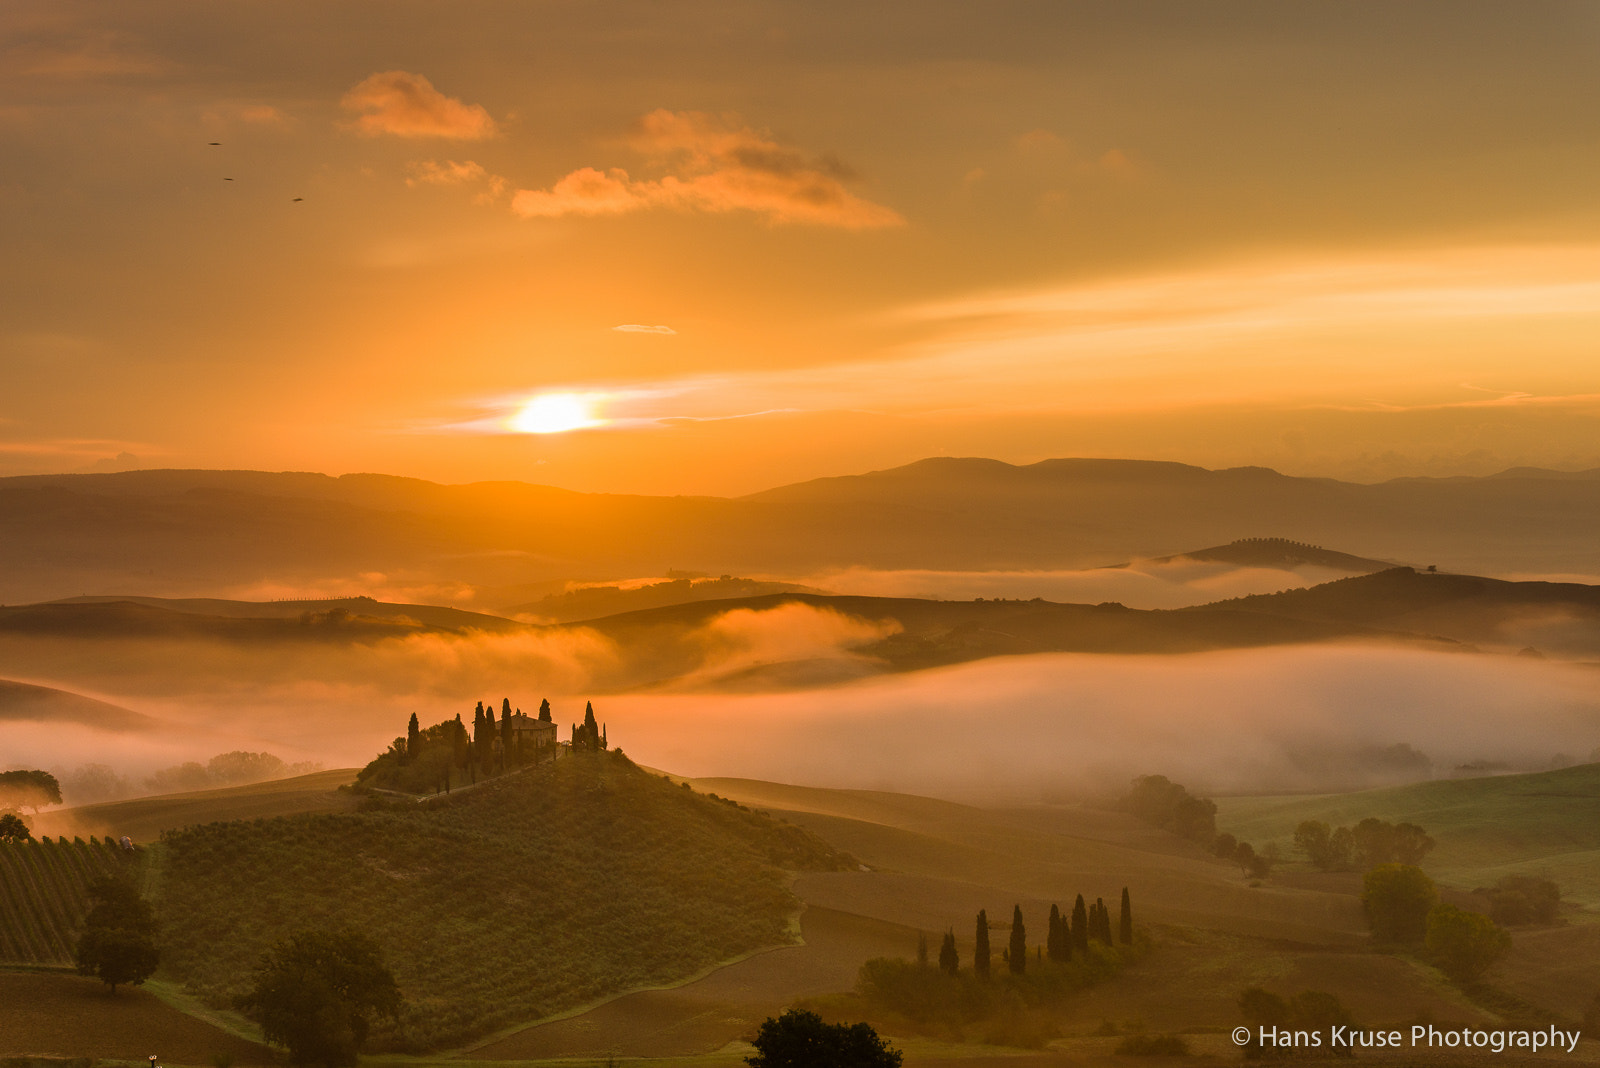 Photograph Belvedere in morning light by Hans Kruse on 500px